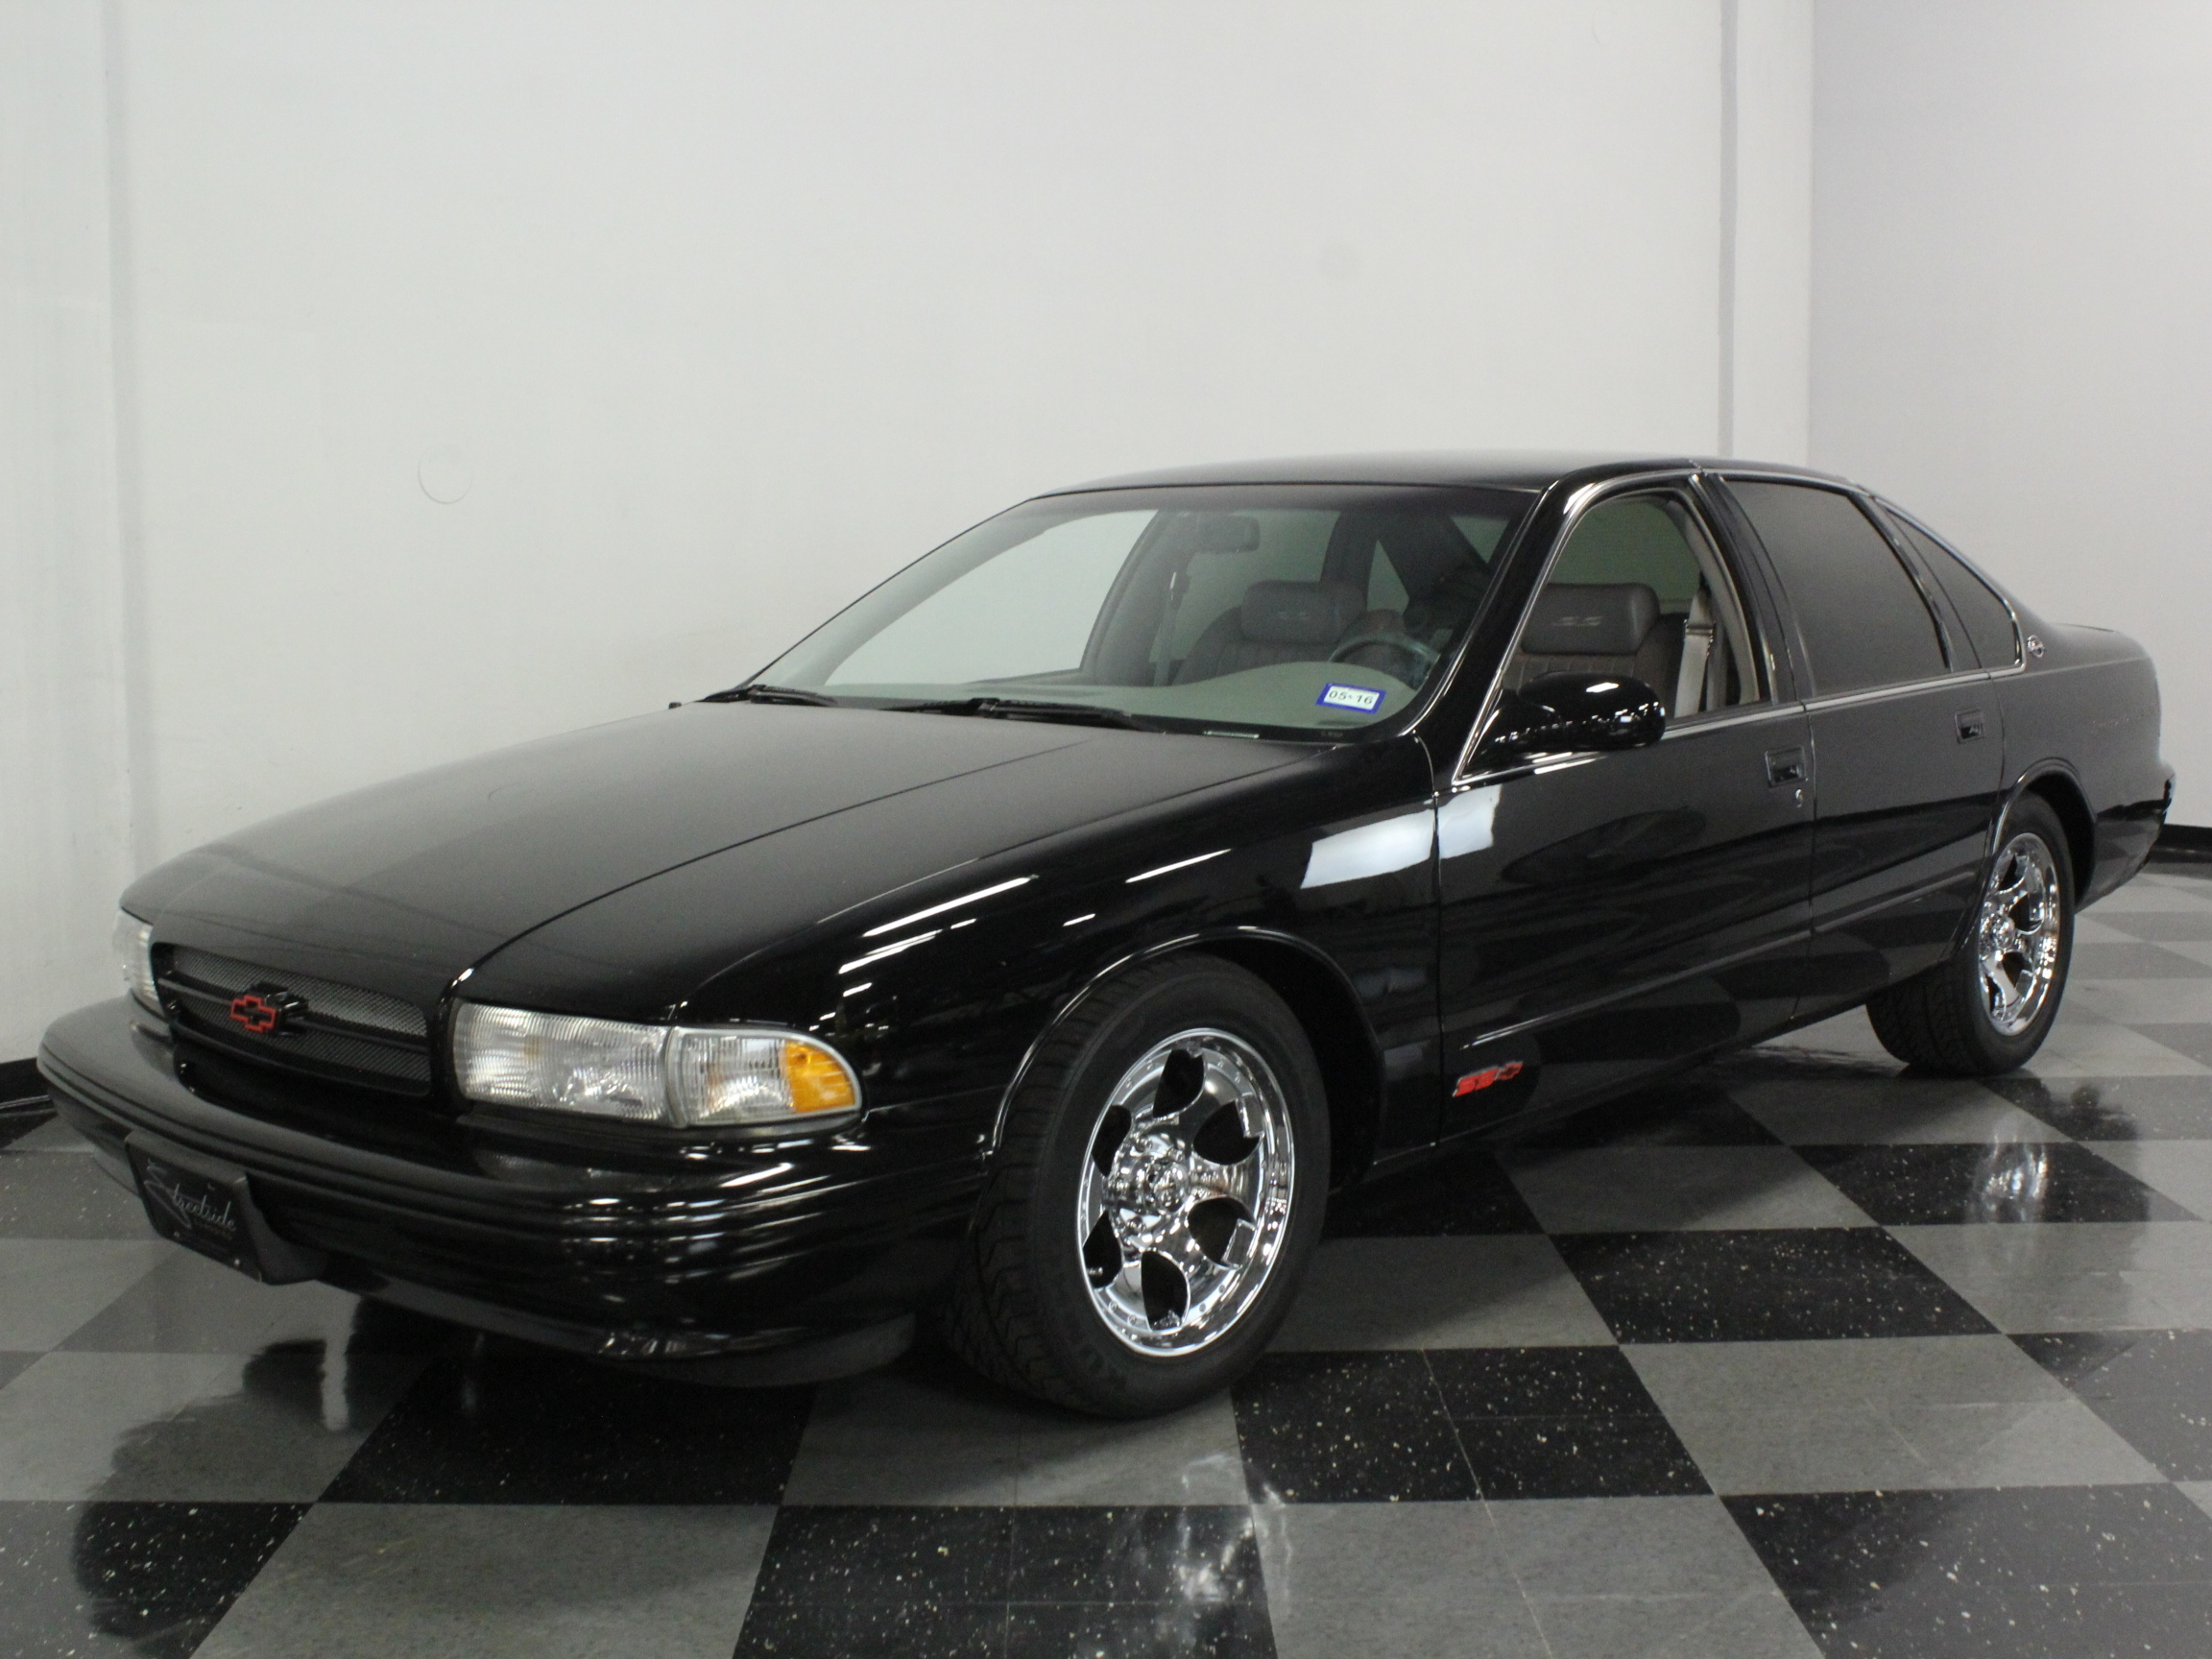 1995 chevrolet impala streetside classics the nation 39 s. Black Bedroom Furniture Sets. Home Design Ideas